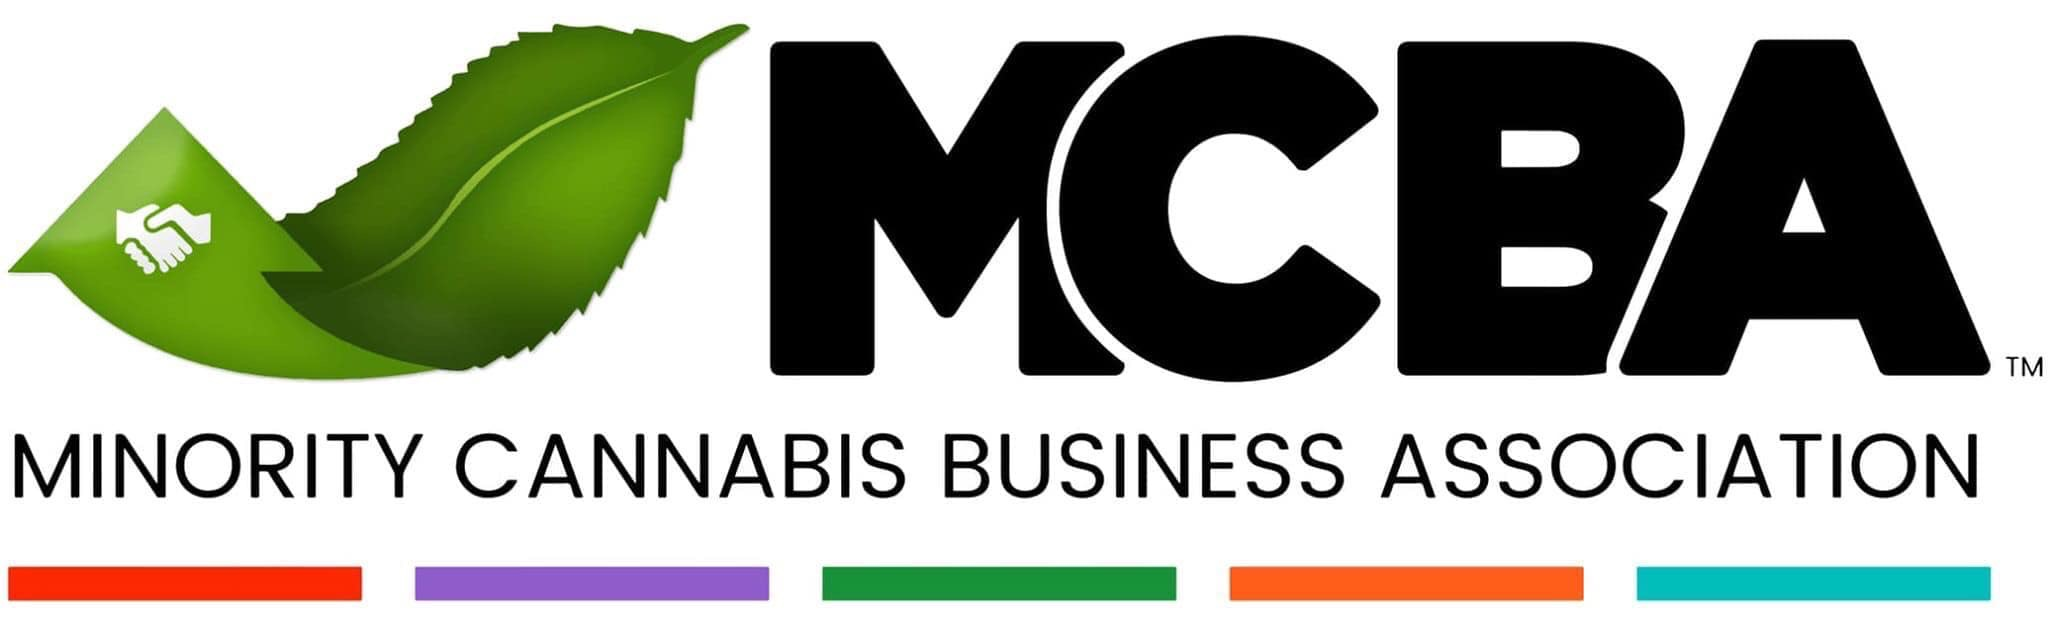 Minority Cannabis Business Association Logo